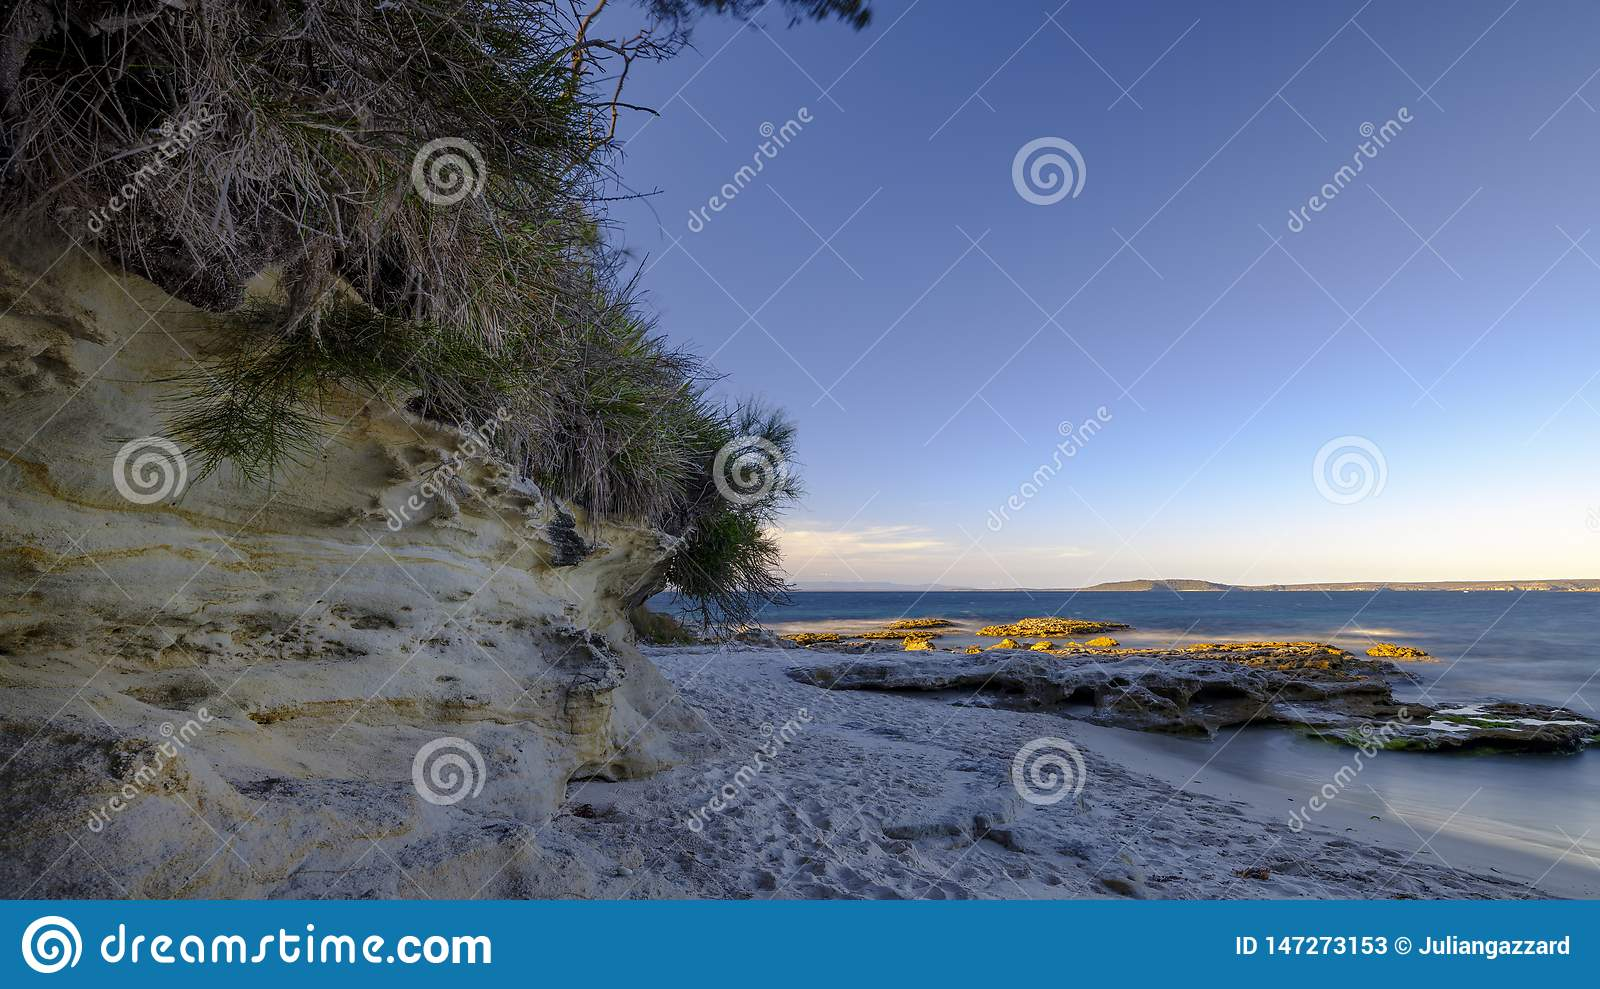 Sunset light on Murrays Beach in the Jervis Bay National Park, NSW, Australia